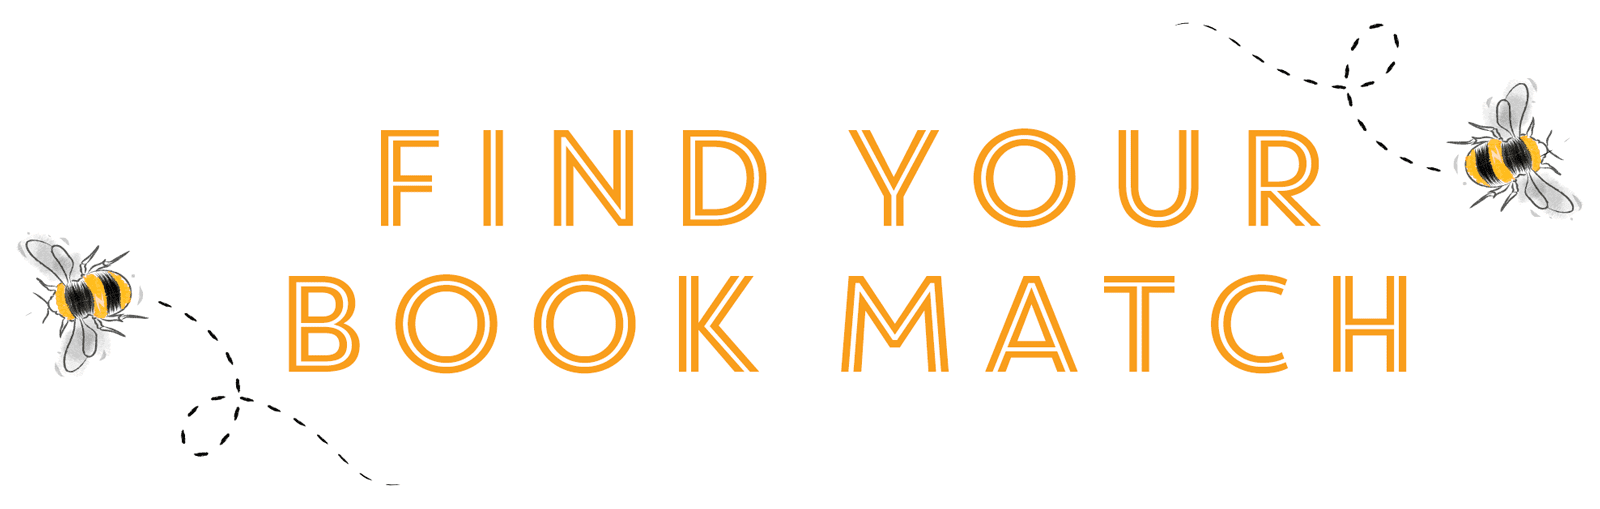 find your book match